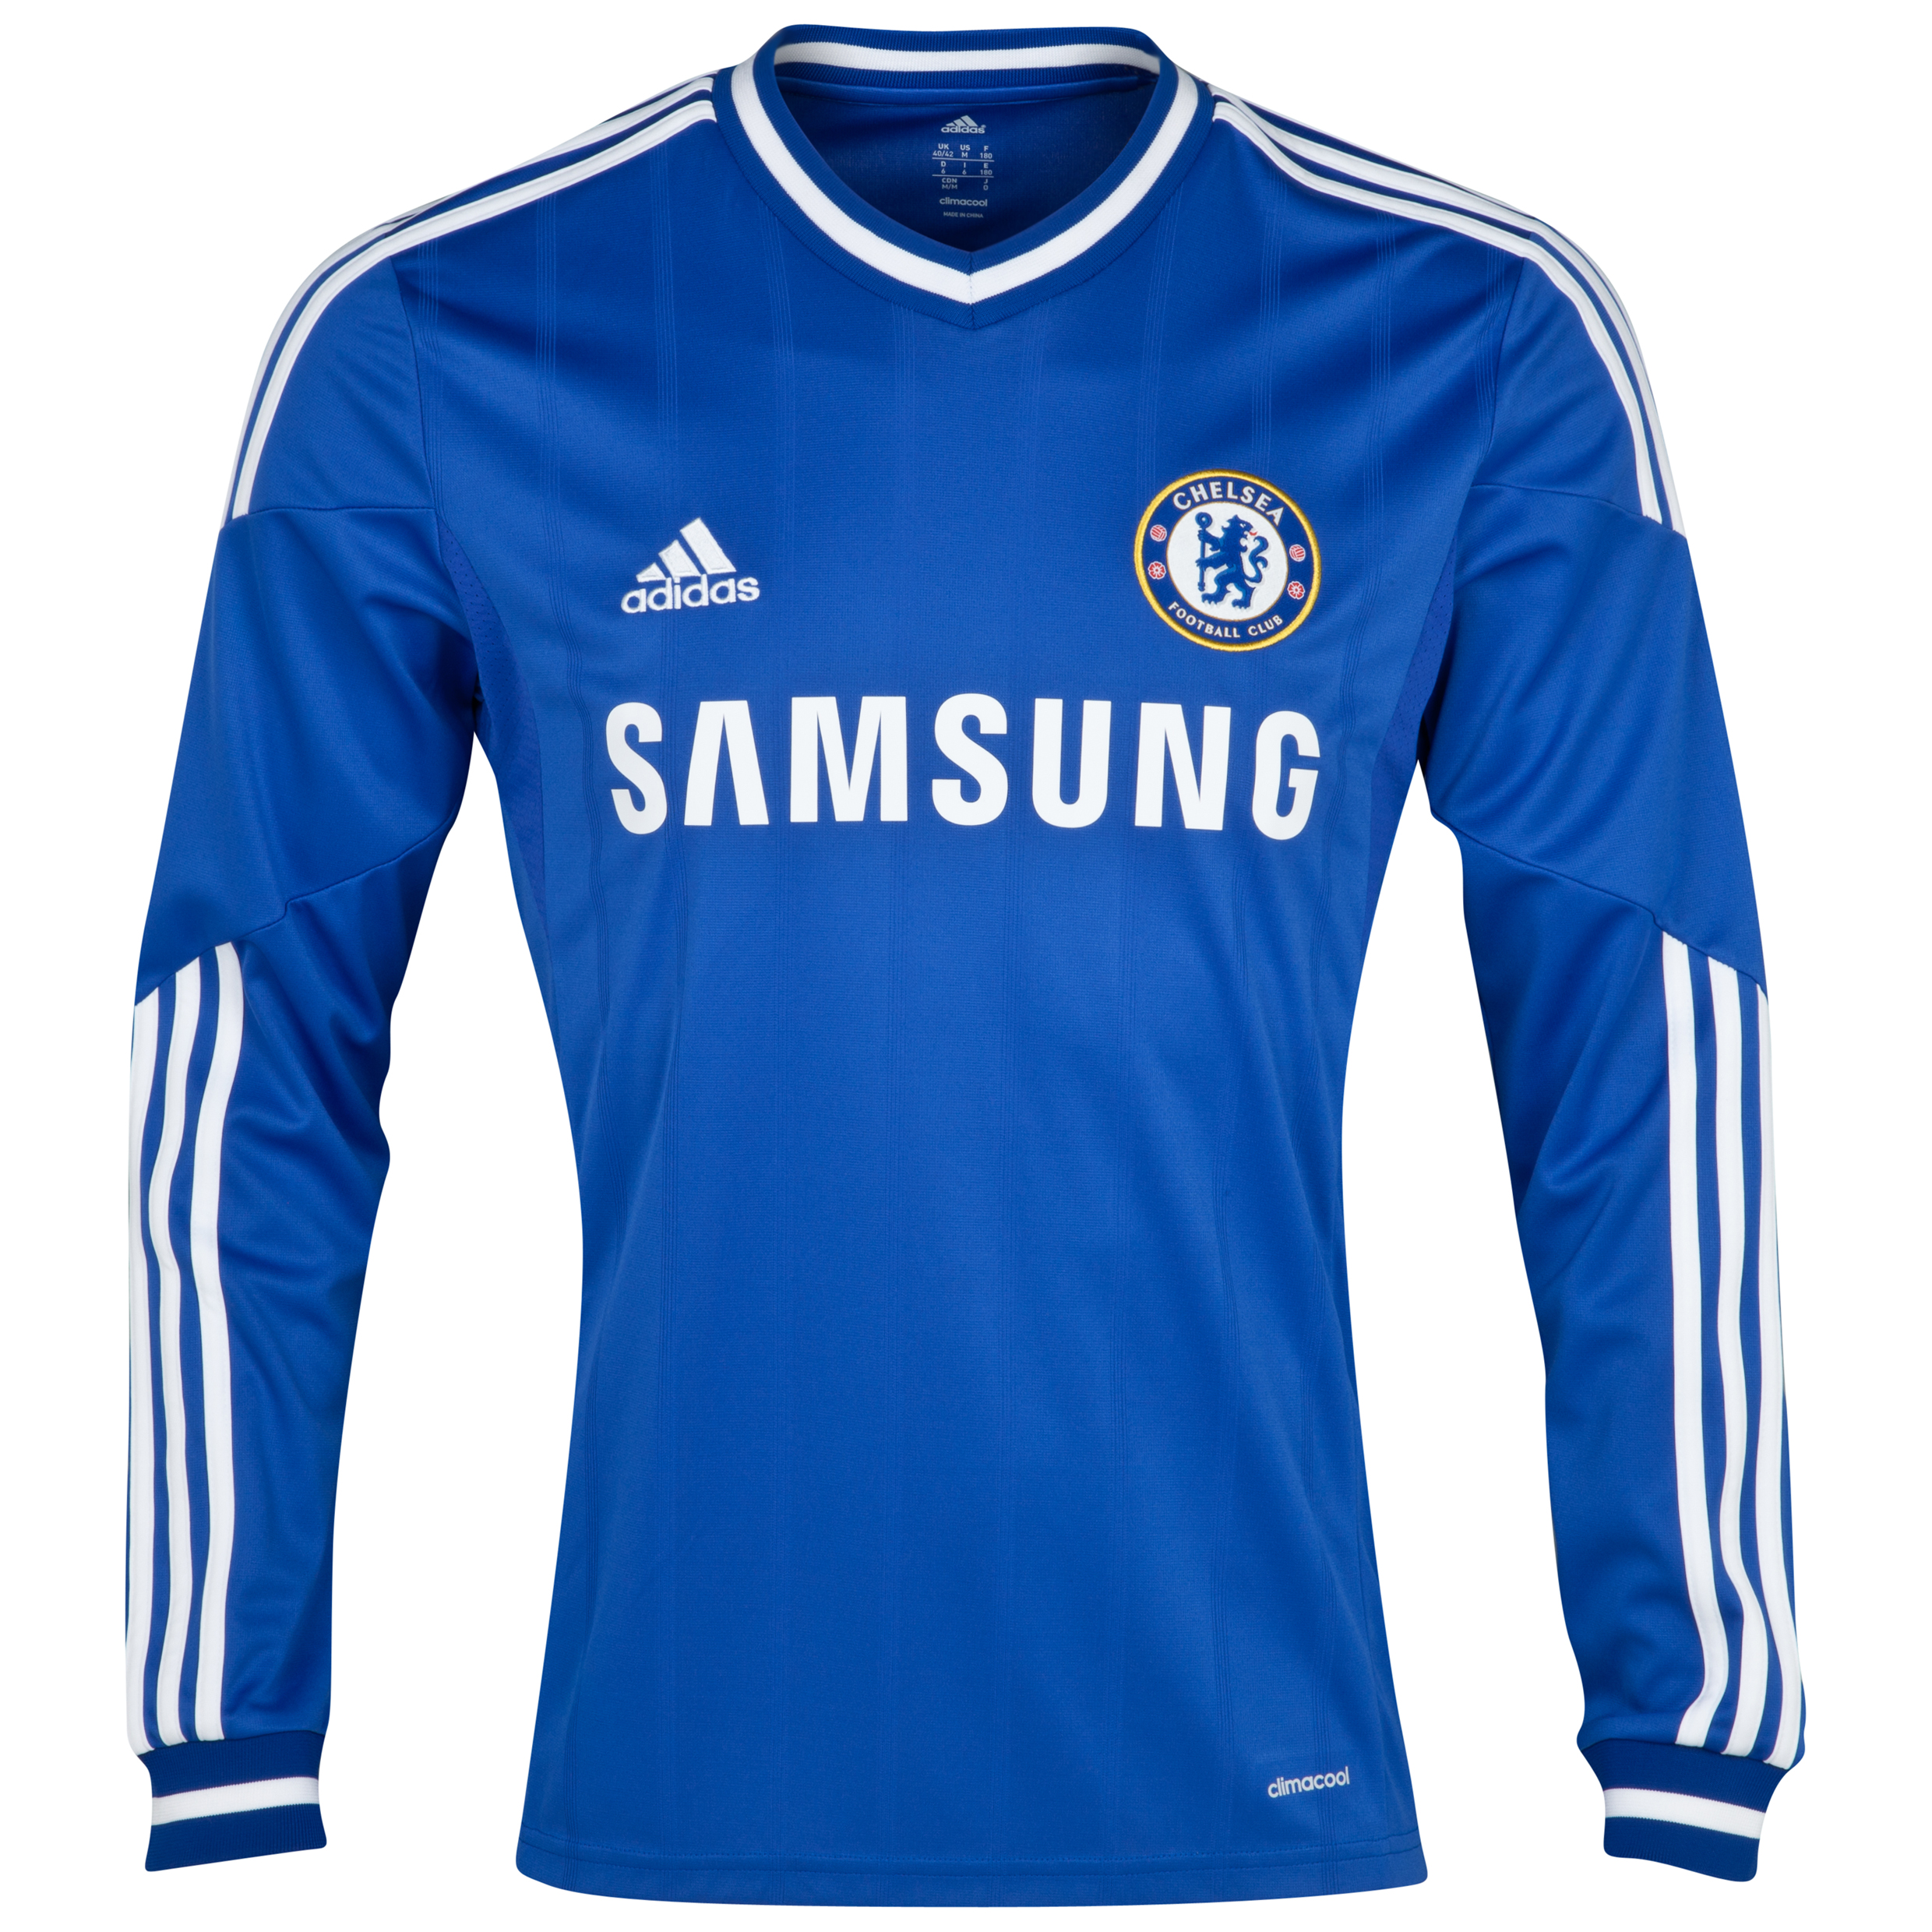 Buy Chelsea Home Kit 2013/14 Long Sleeve Kids